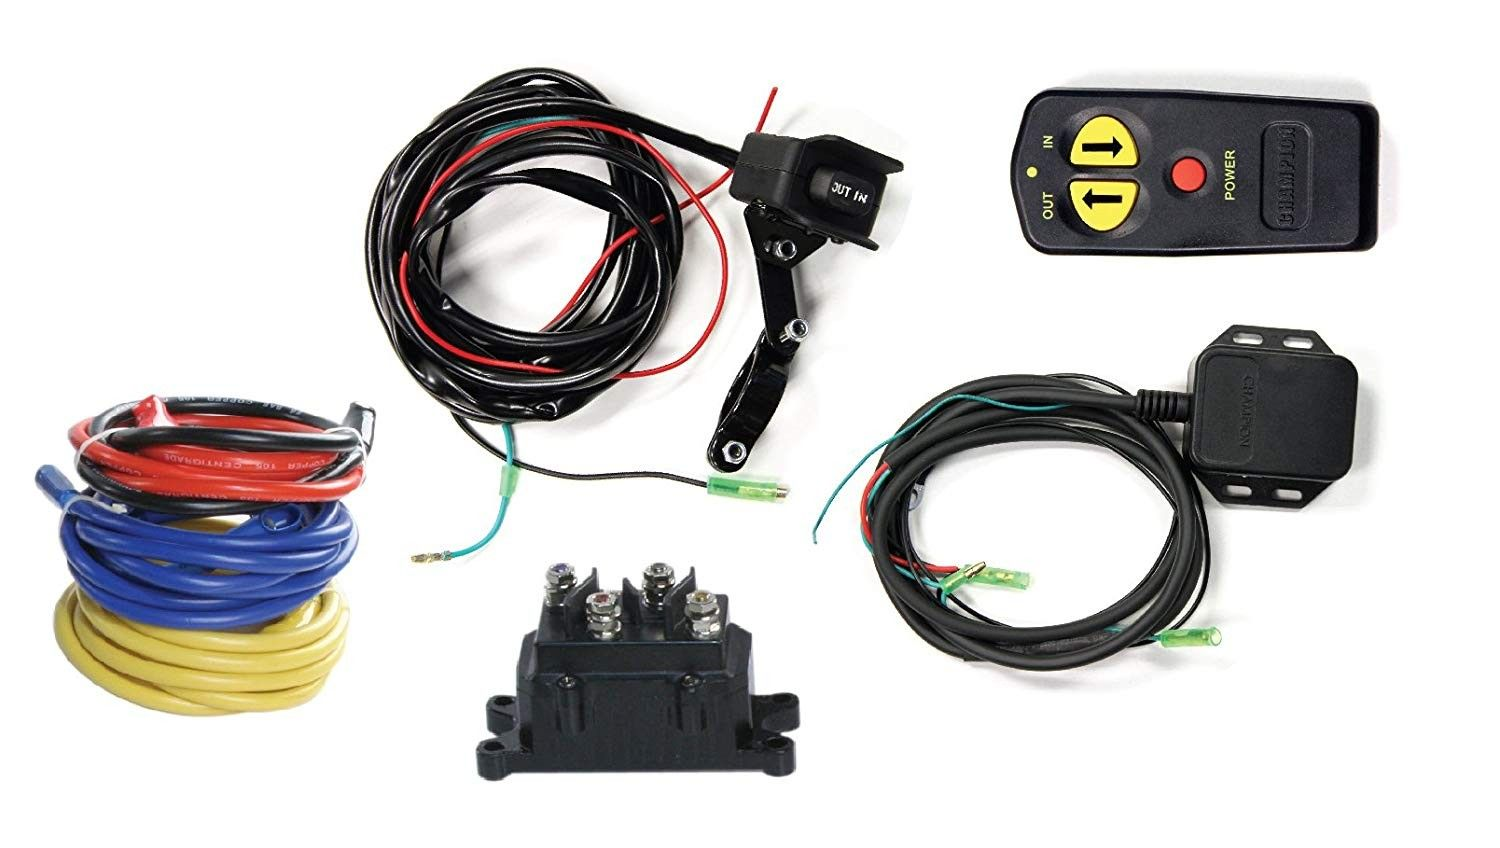 Wiring Order For A Traveller Remote Control Awesome In 2020 Remote Control Remote Winches